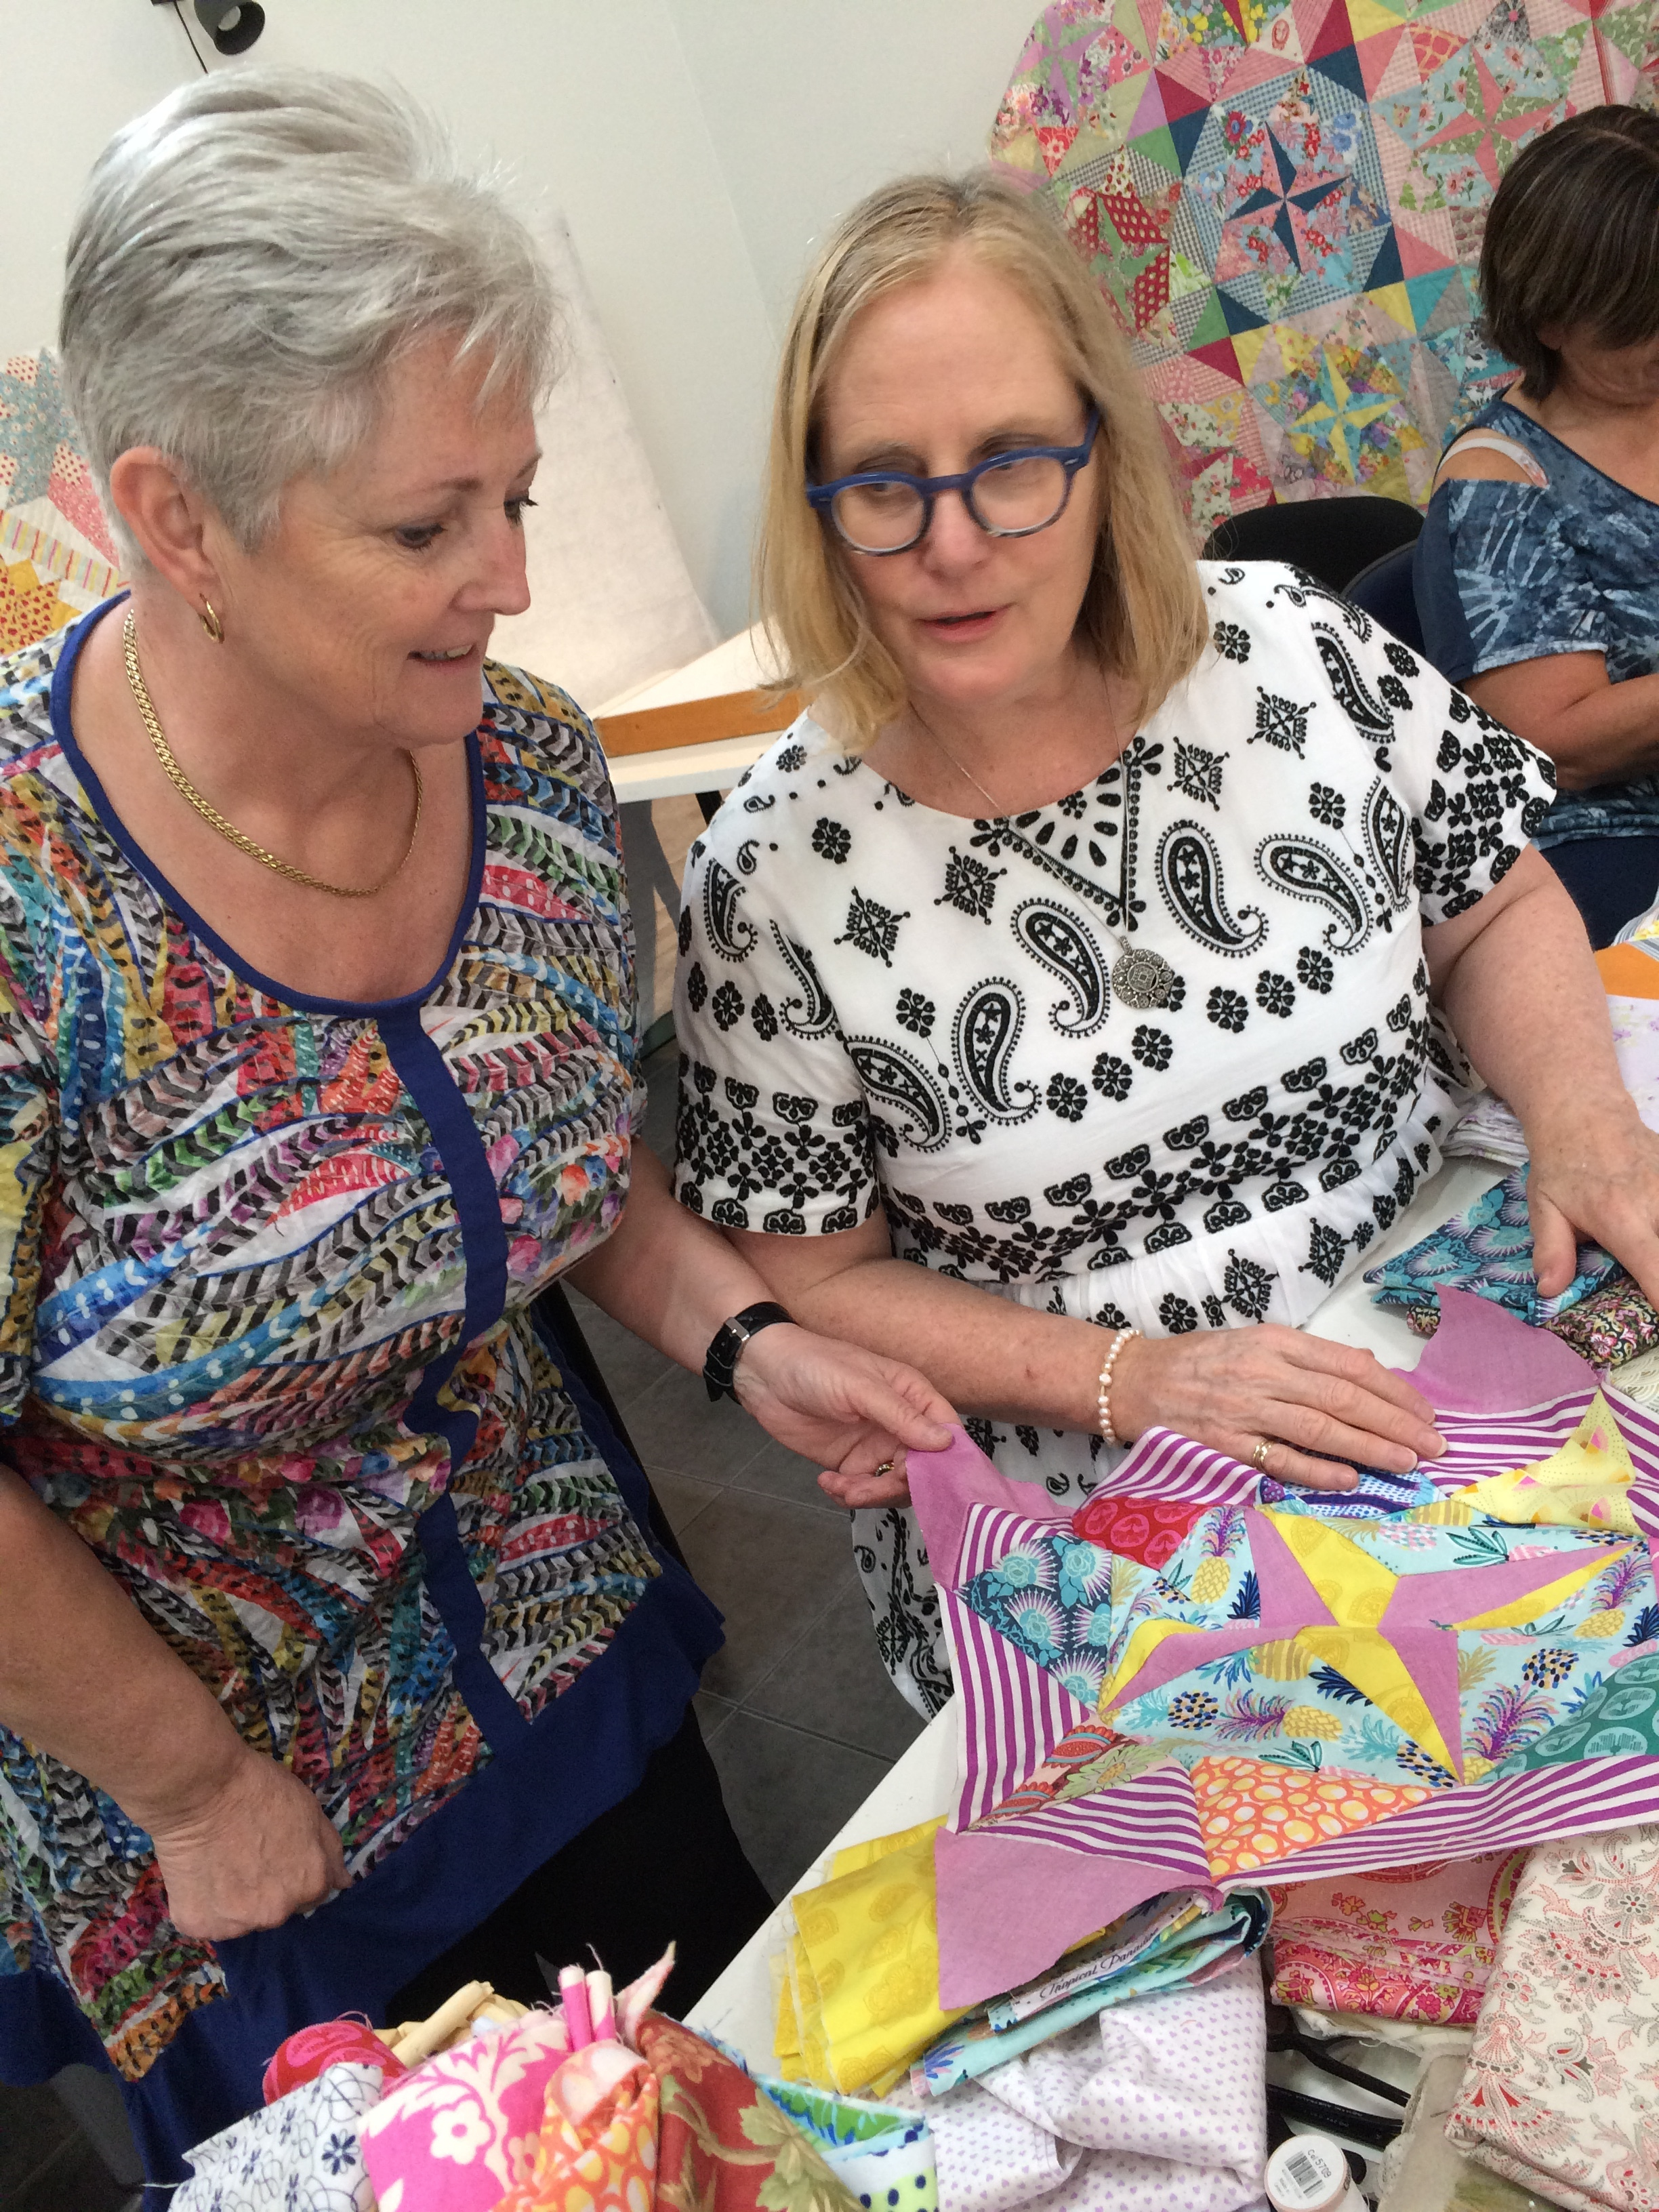 Here Judy (on the right) is helping Sue exclude some fabric choices. Sue's Mayfair block has some Victoria Finlay Wolfe fabric and some Anna Maria Horner too.